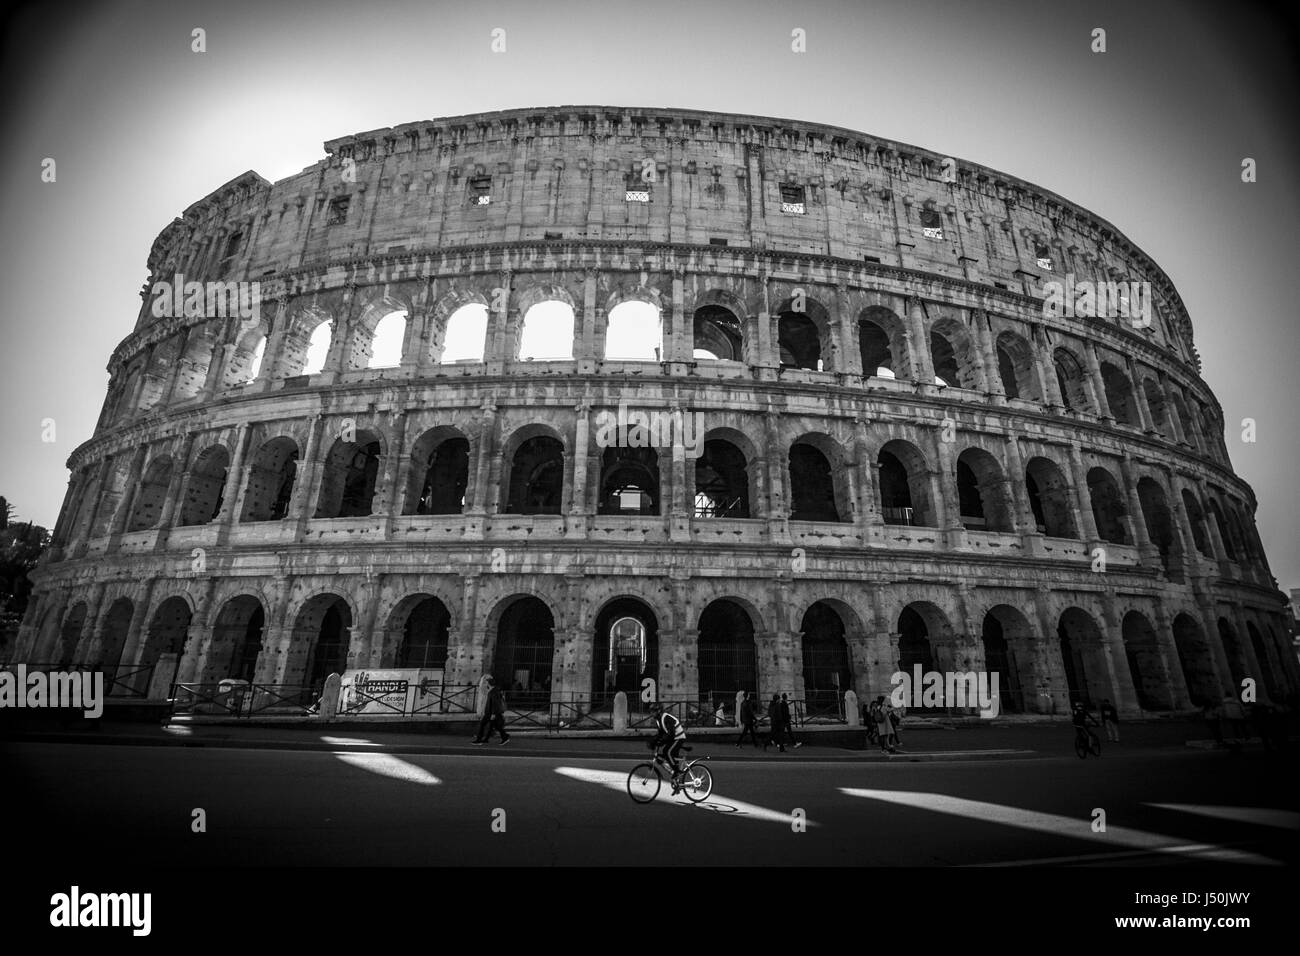 The coliseum in black and white rome italy europe